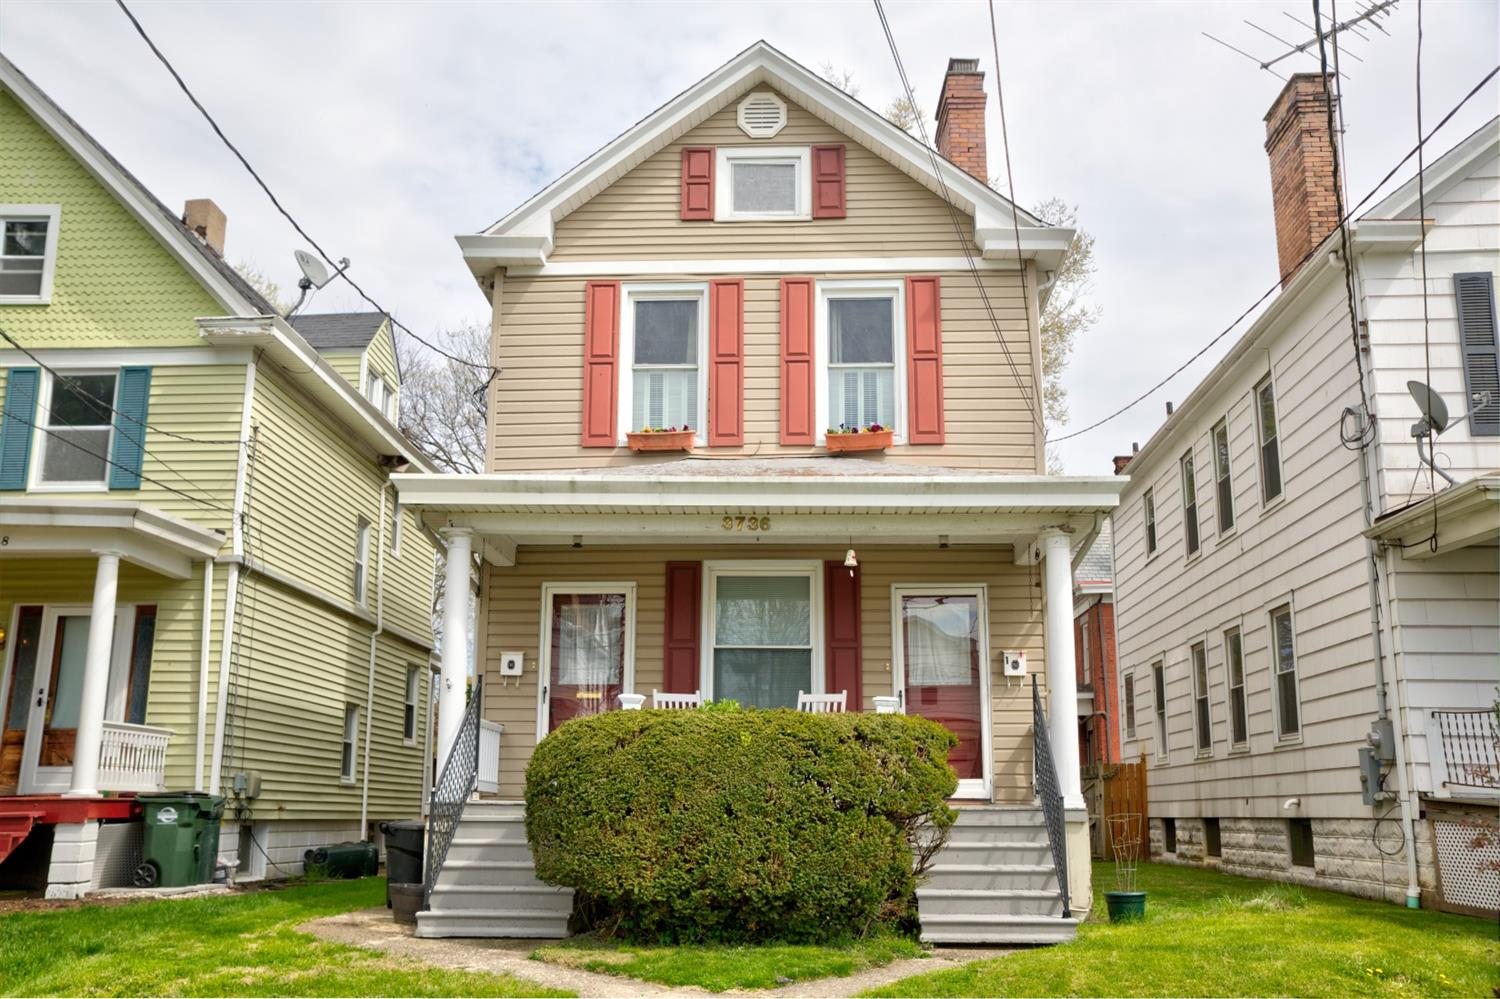 Property for sale at 3736 Elsmere Avenue, Norwood,  Ohio 45212